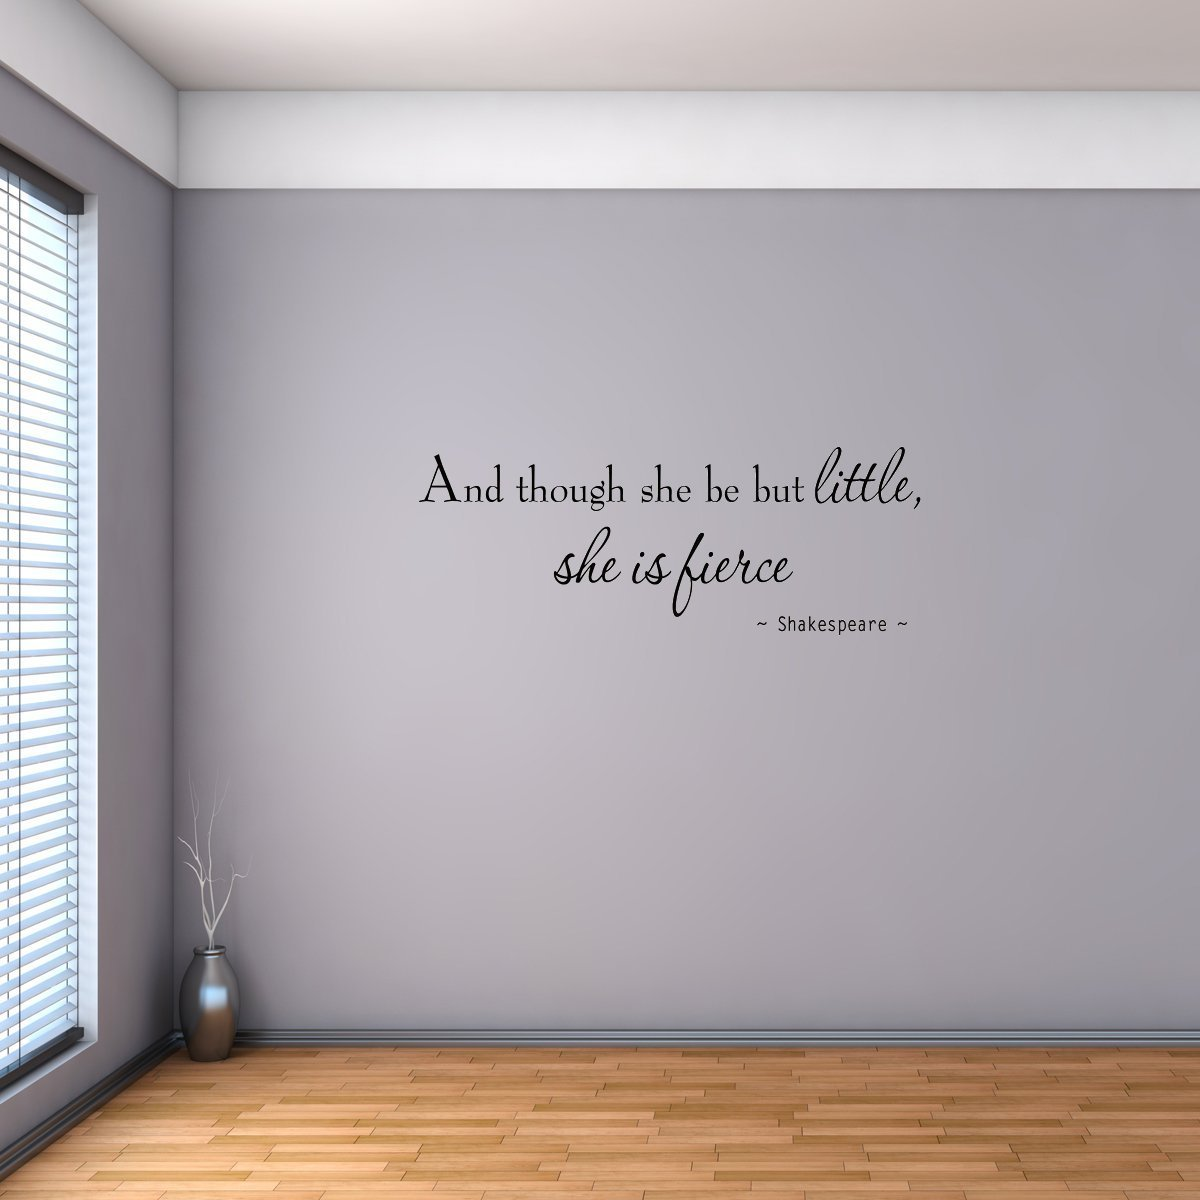 And Though She Be But Little She is Fierce Nursery Nursery Wall Quotes Decals - VWAQ Vinyl Wall Art Quotes and Prints